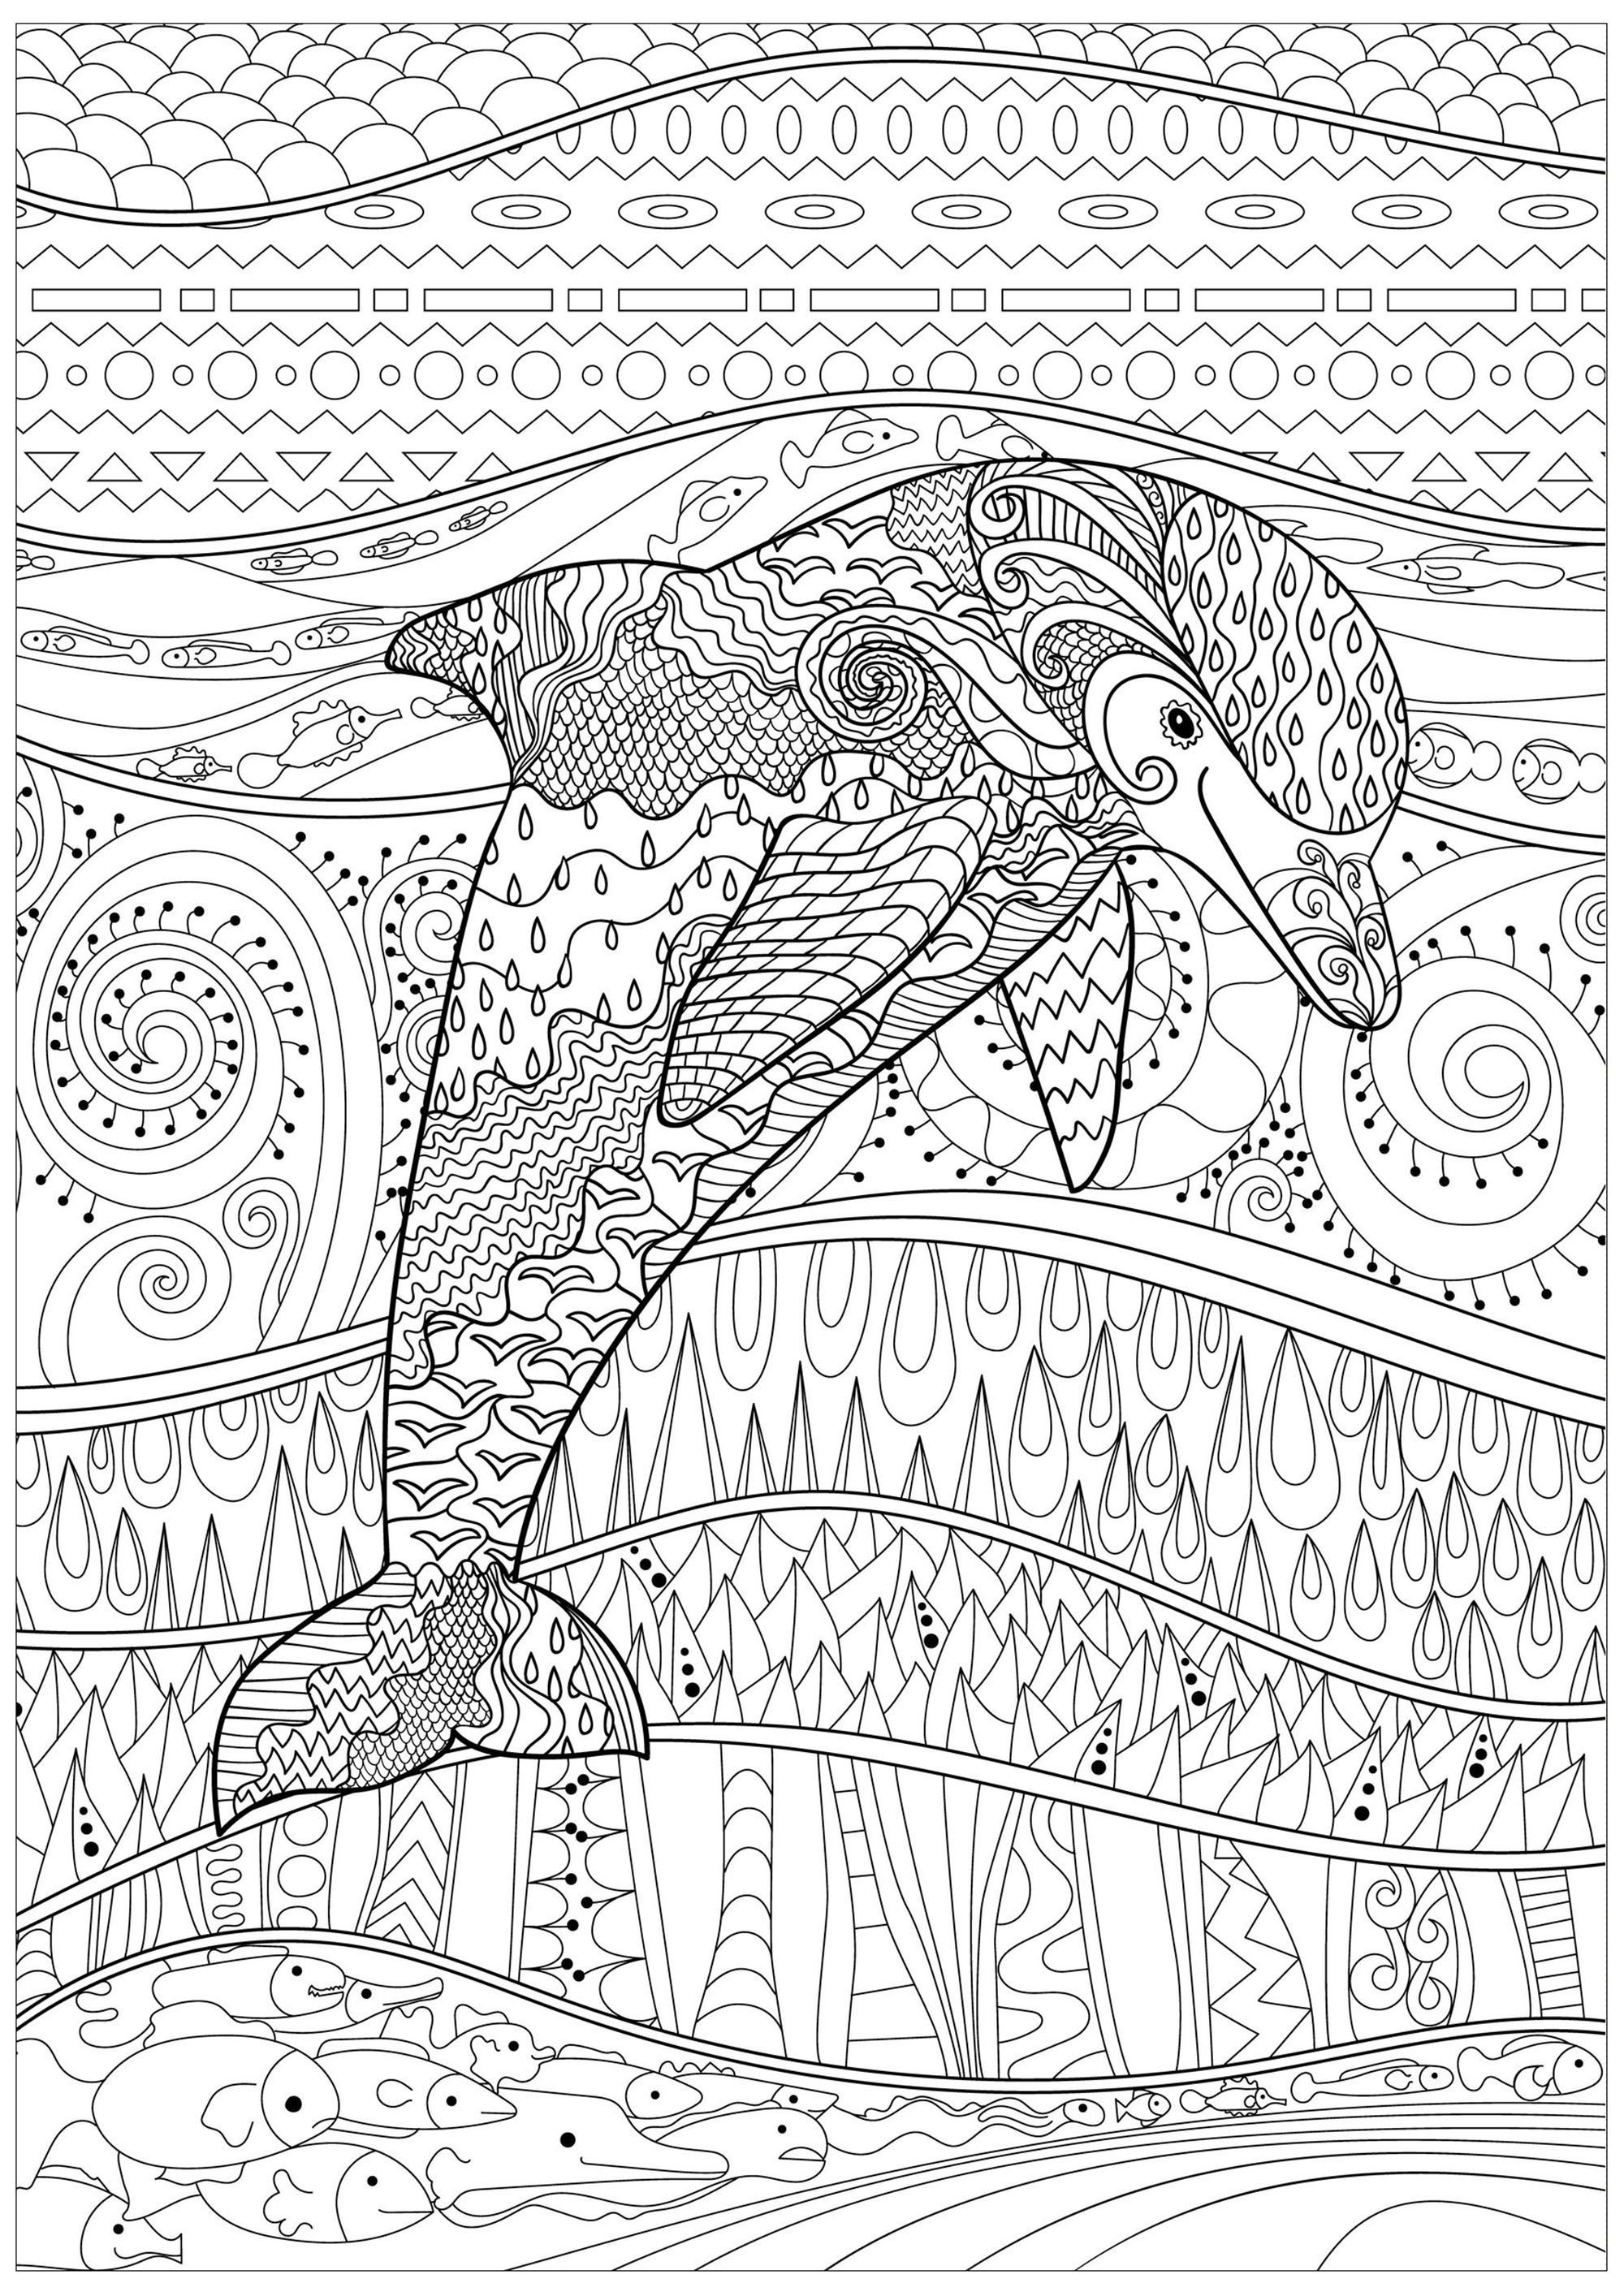 Dolphin In A Calm Sea With Fishes And Lovely Abstract And Complex Patterns Inside And Outside His Dolphin Coloring Pages Coloring Pages Horse Coloring Pages